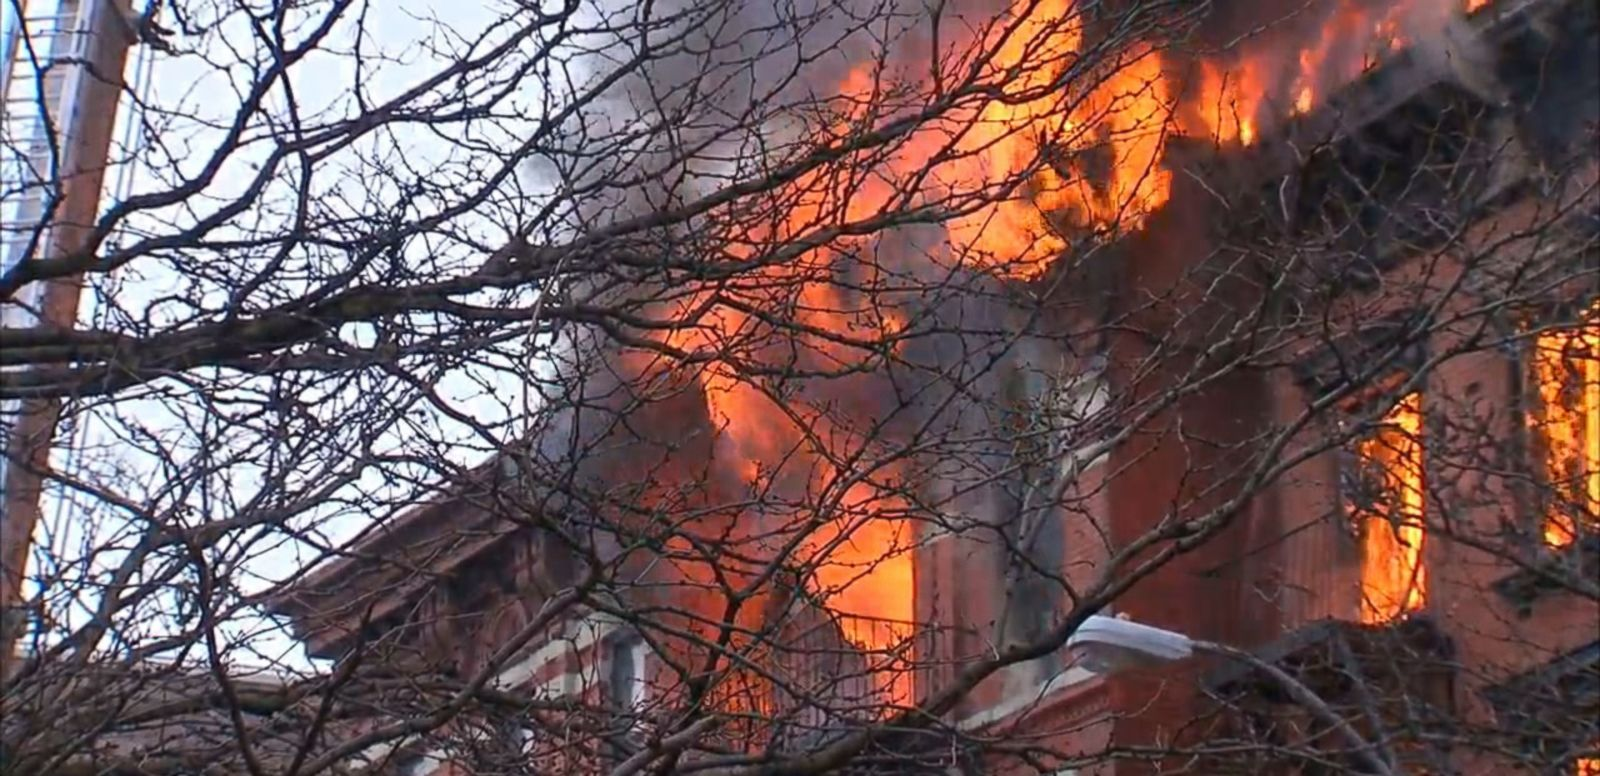 VIDEO: Onlookers say the face of the East Village building blew off after a possible gas explosion.